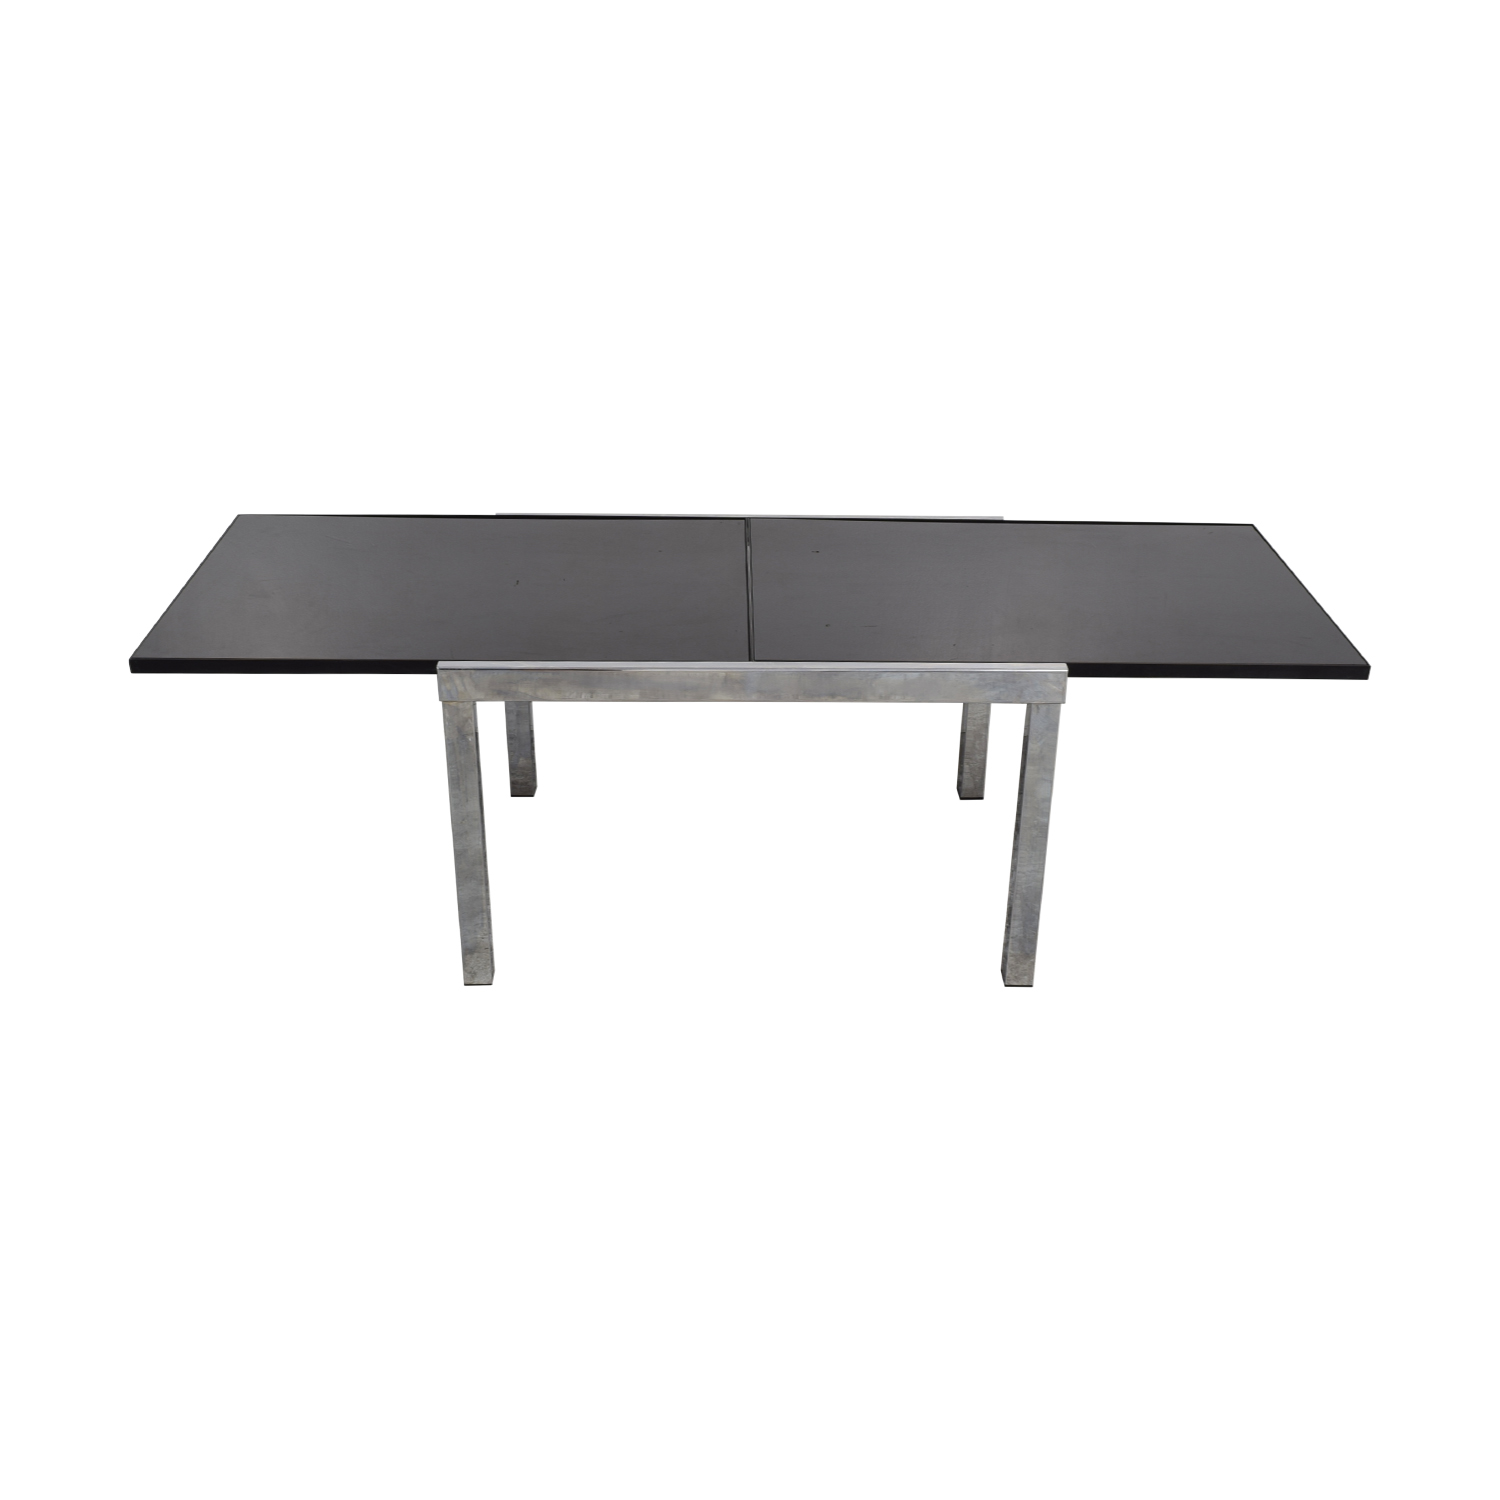 Roche Bobois Roche Bobois Glass and Chrome Extendable Dining Table on sale